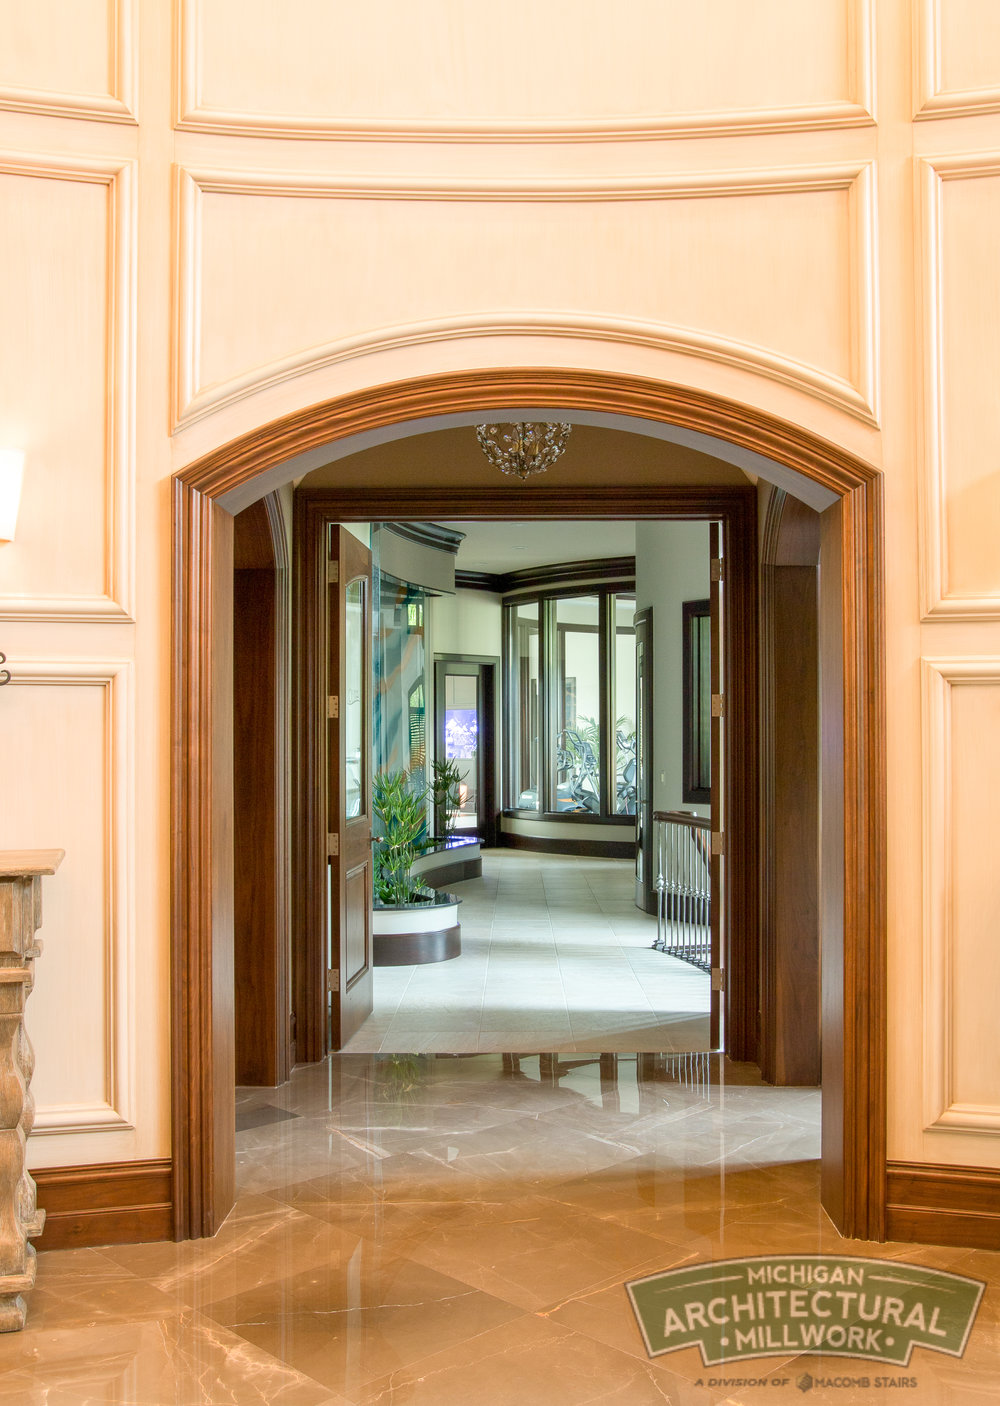 Michigan Architectural Millwork- Moulding and Millwork Photo-77.jpg